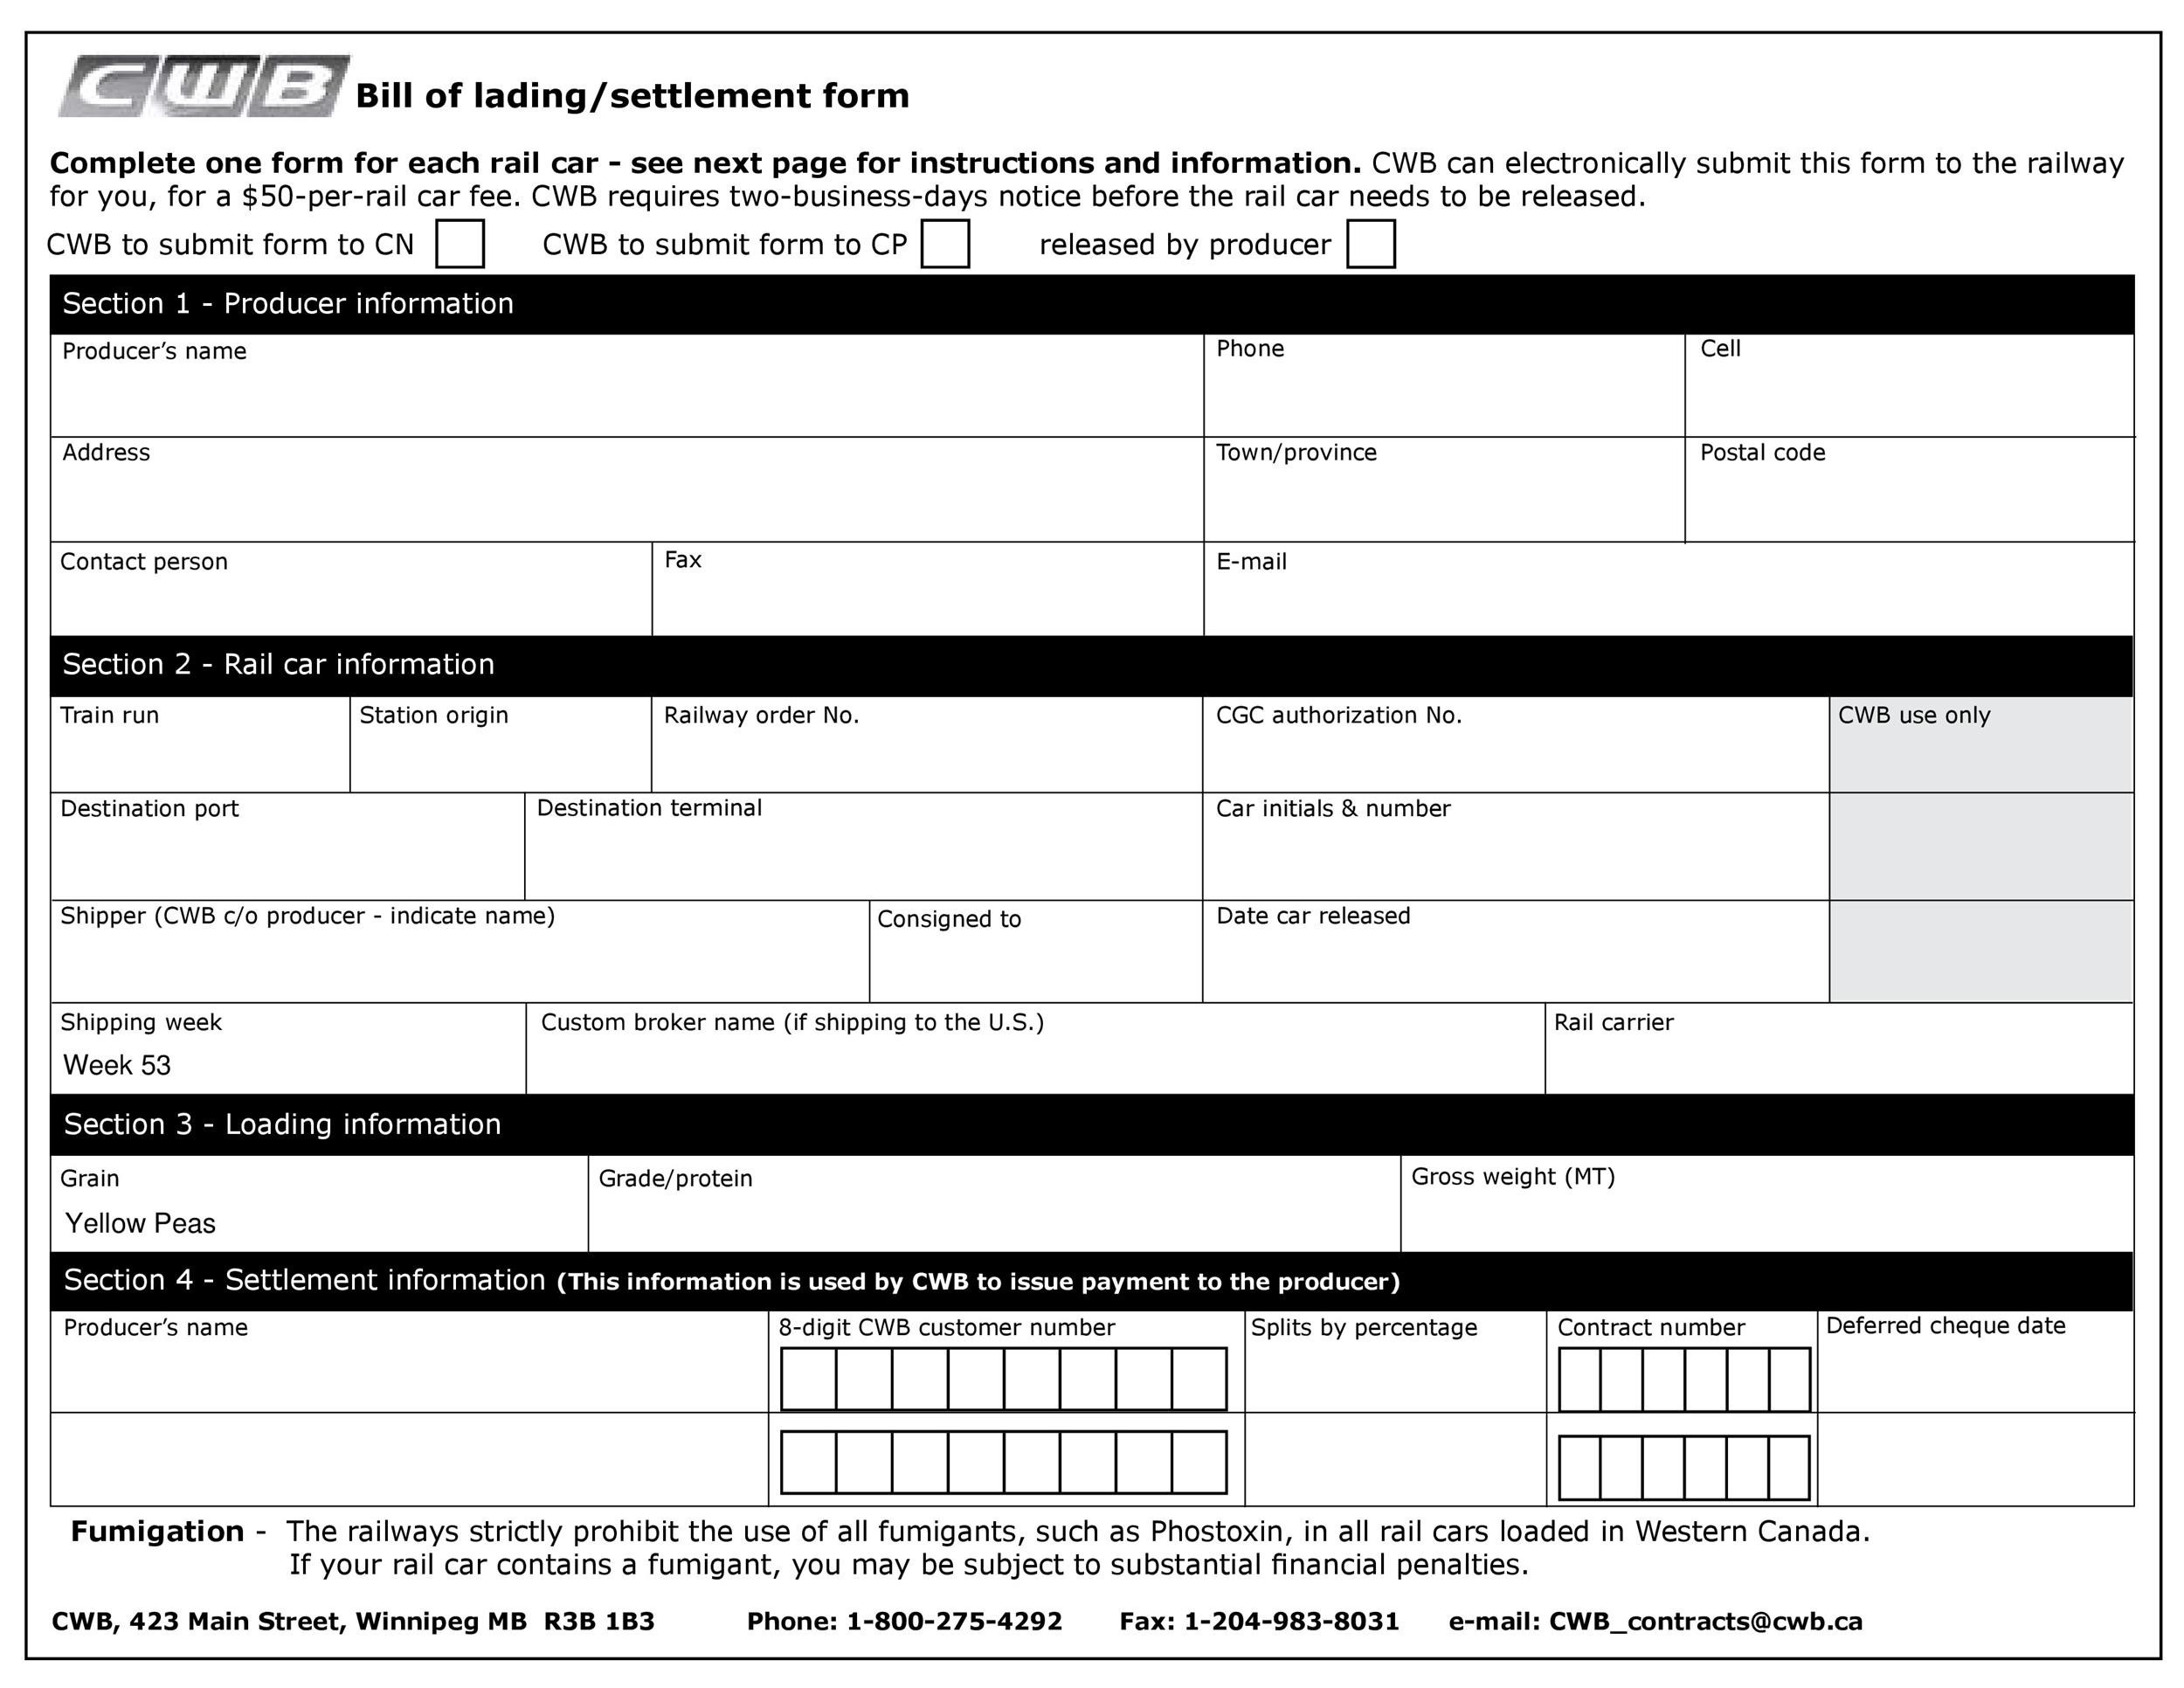 40 Free Bill of Lading Forms  Templates - Template Lab - shipping bol